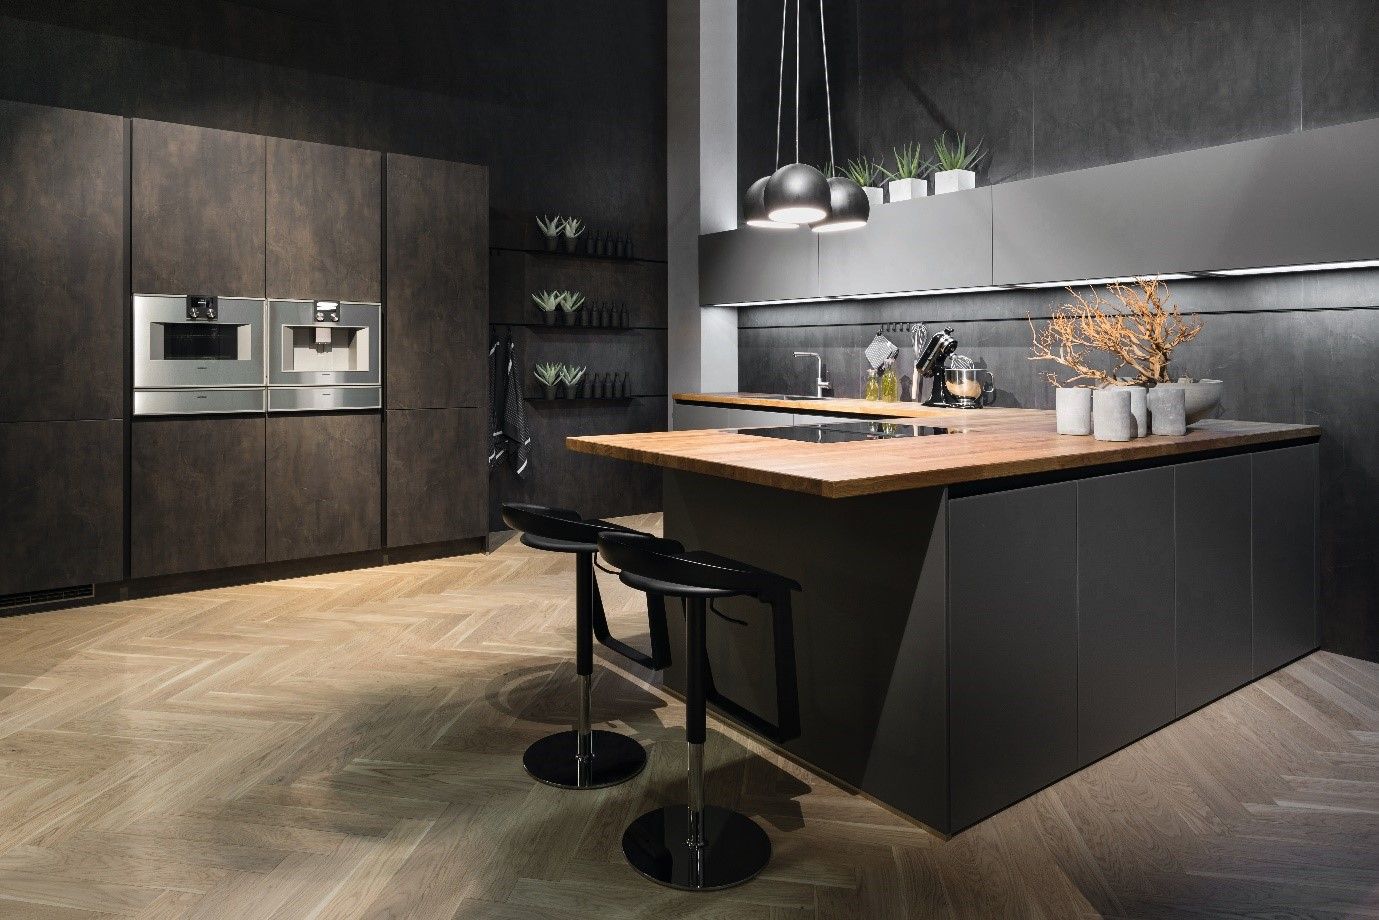 New kitchens Sidcup and Bromley kitchens